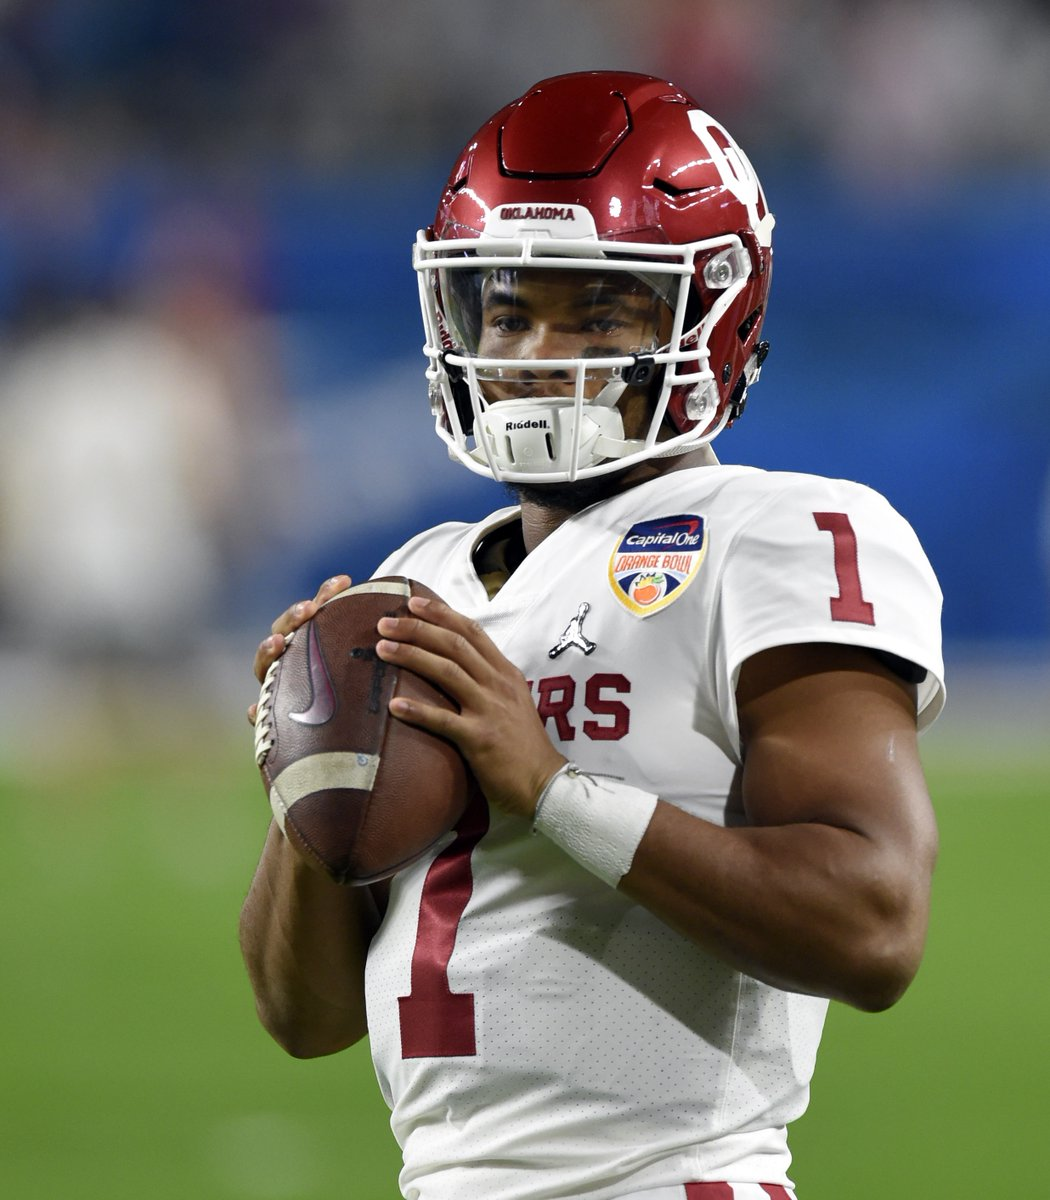 Happy Birthday to Kyler Murray and Jalen Hurts🎂🏈  2018: Kyler Murray - 94.6 (1st) 2019: Jalen Hurts - 91.8 (2nd)